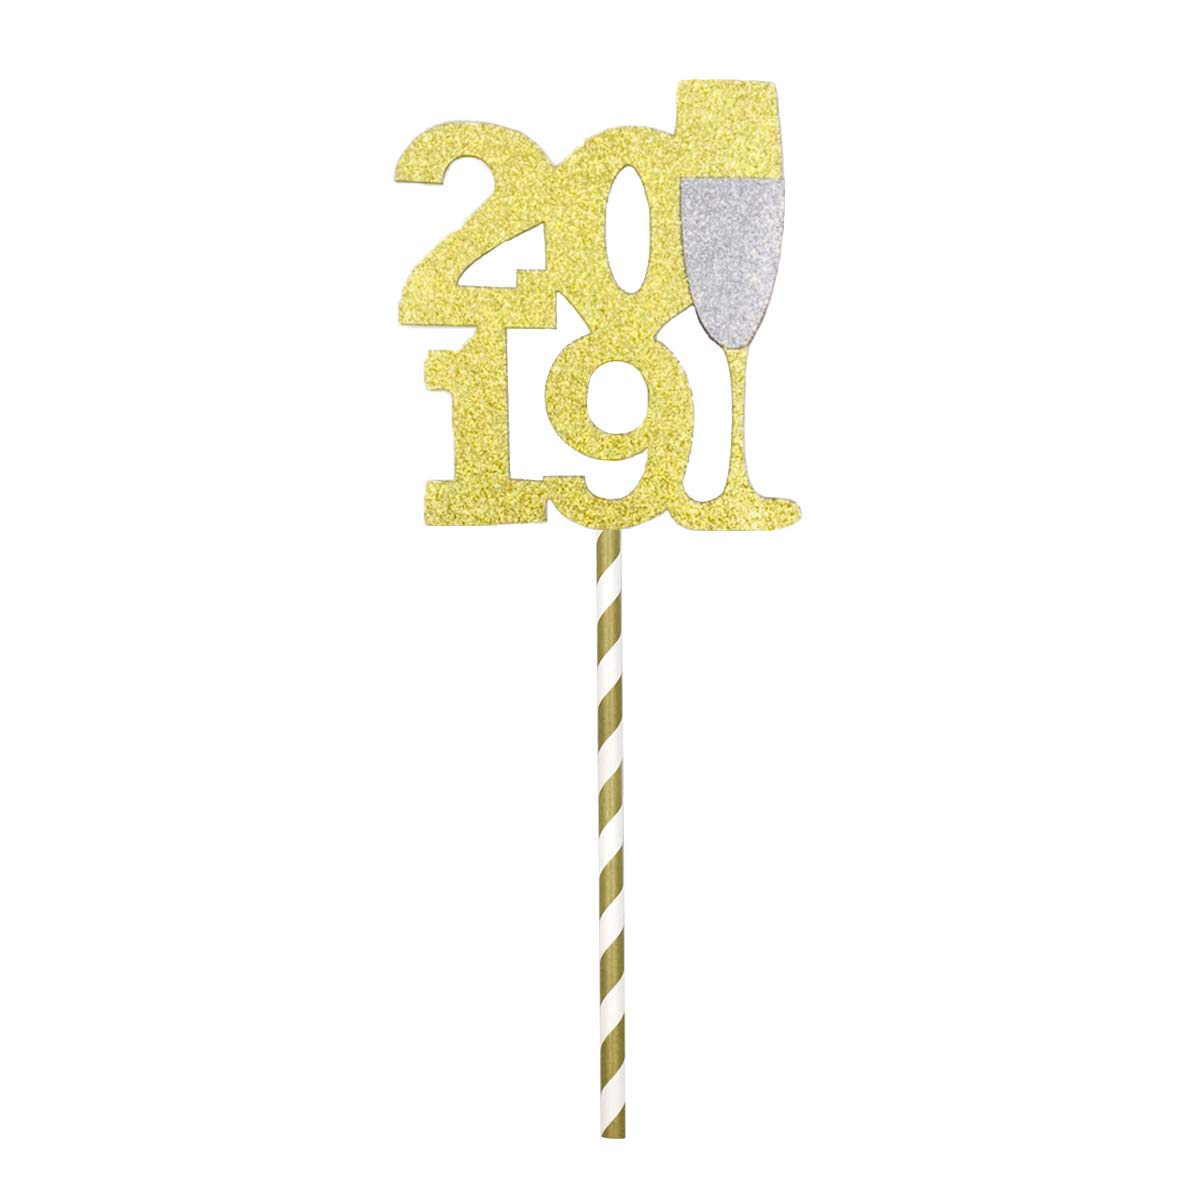 JANOU 2019 Gold Glitter Champagne Glass Cake topper Cupcake Toothpick Cake Decor Wedding Birthday Graduation New Year Party Suppliers